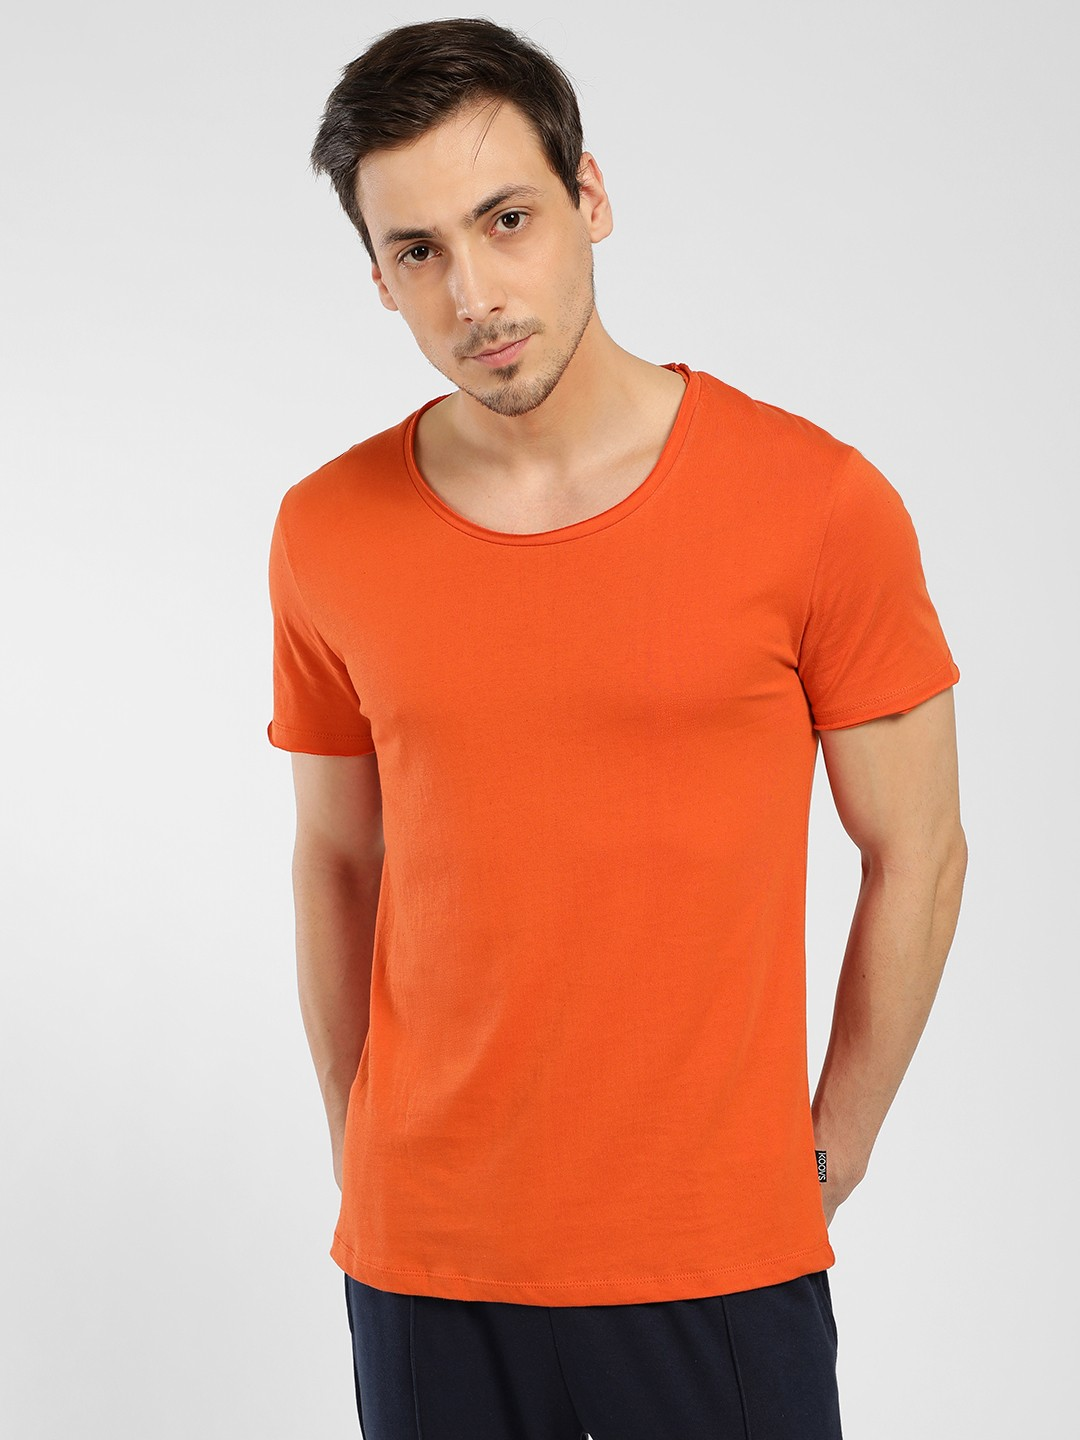 KOOVS Orange Basic Scoop Neck T-Shirt 1